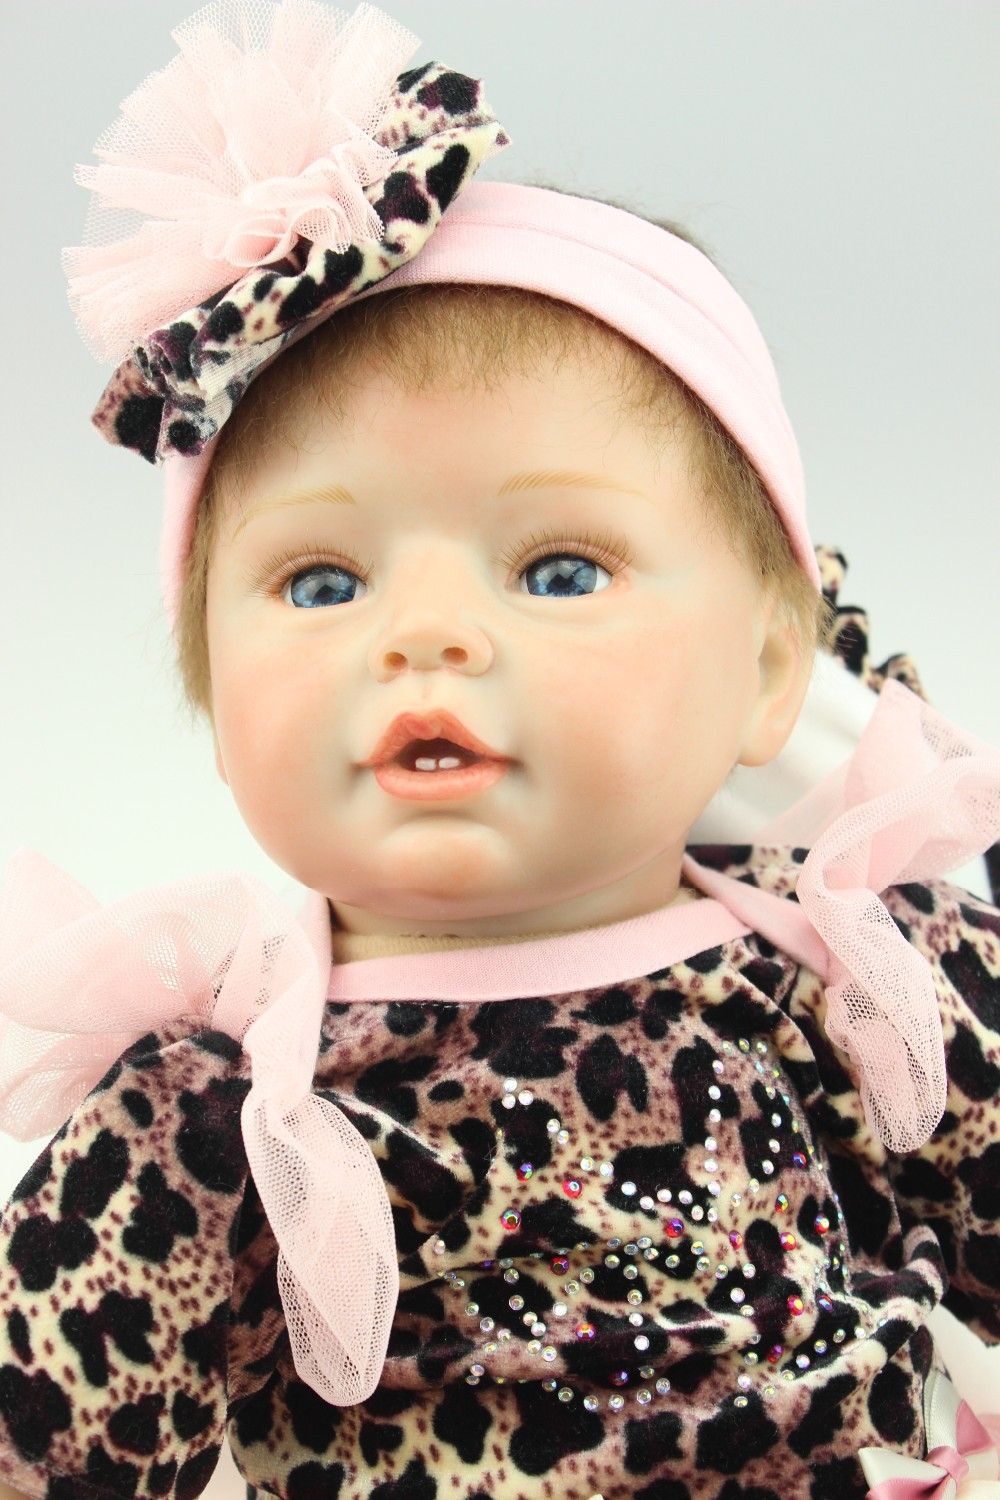 doll alive reborn doll with soft real gentle  touch wholesale realistic simulation reborn baby doll soft silicone vinyl tetiana tikhovska paper doll